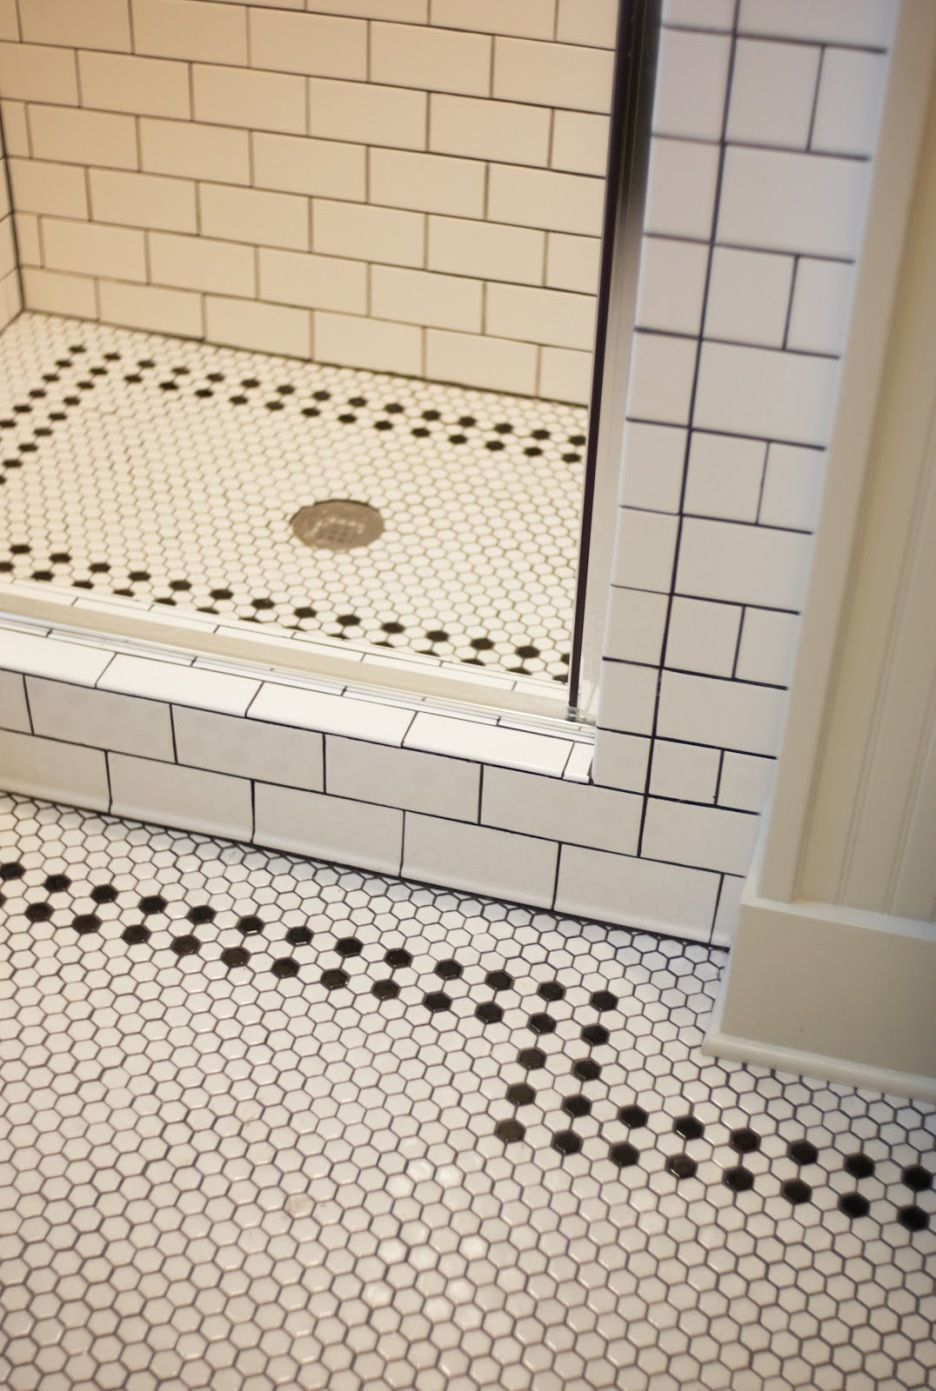 Appealing octagon tile patterns flooring design ideas magnificent appealing octagon tile patterns flooring design ideas magnificent white ceramic octagon tile flooring in shower bathroom tilingtile for small dailygadgetfo Gallery